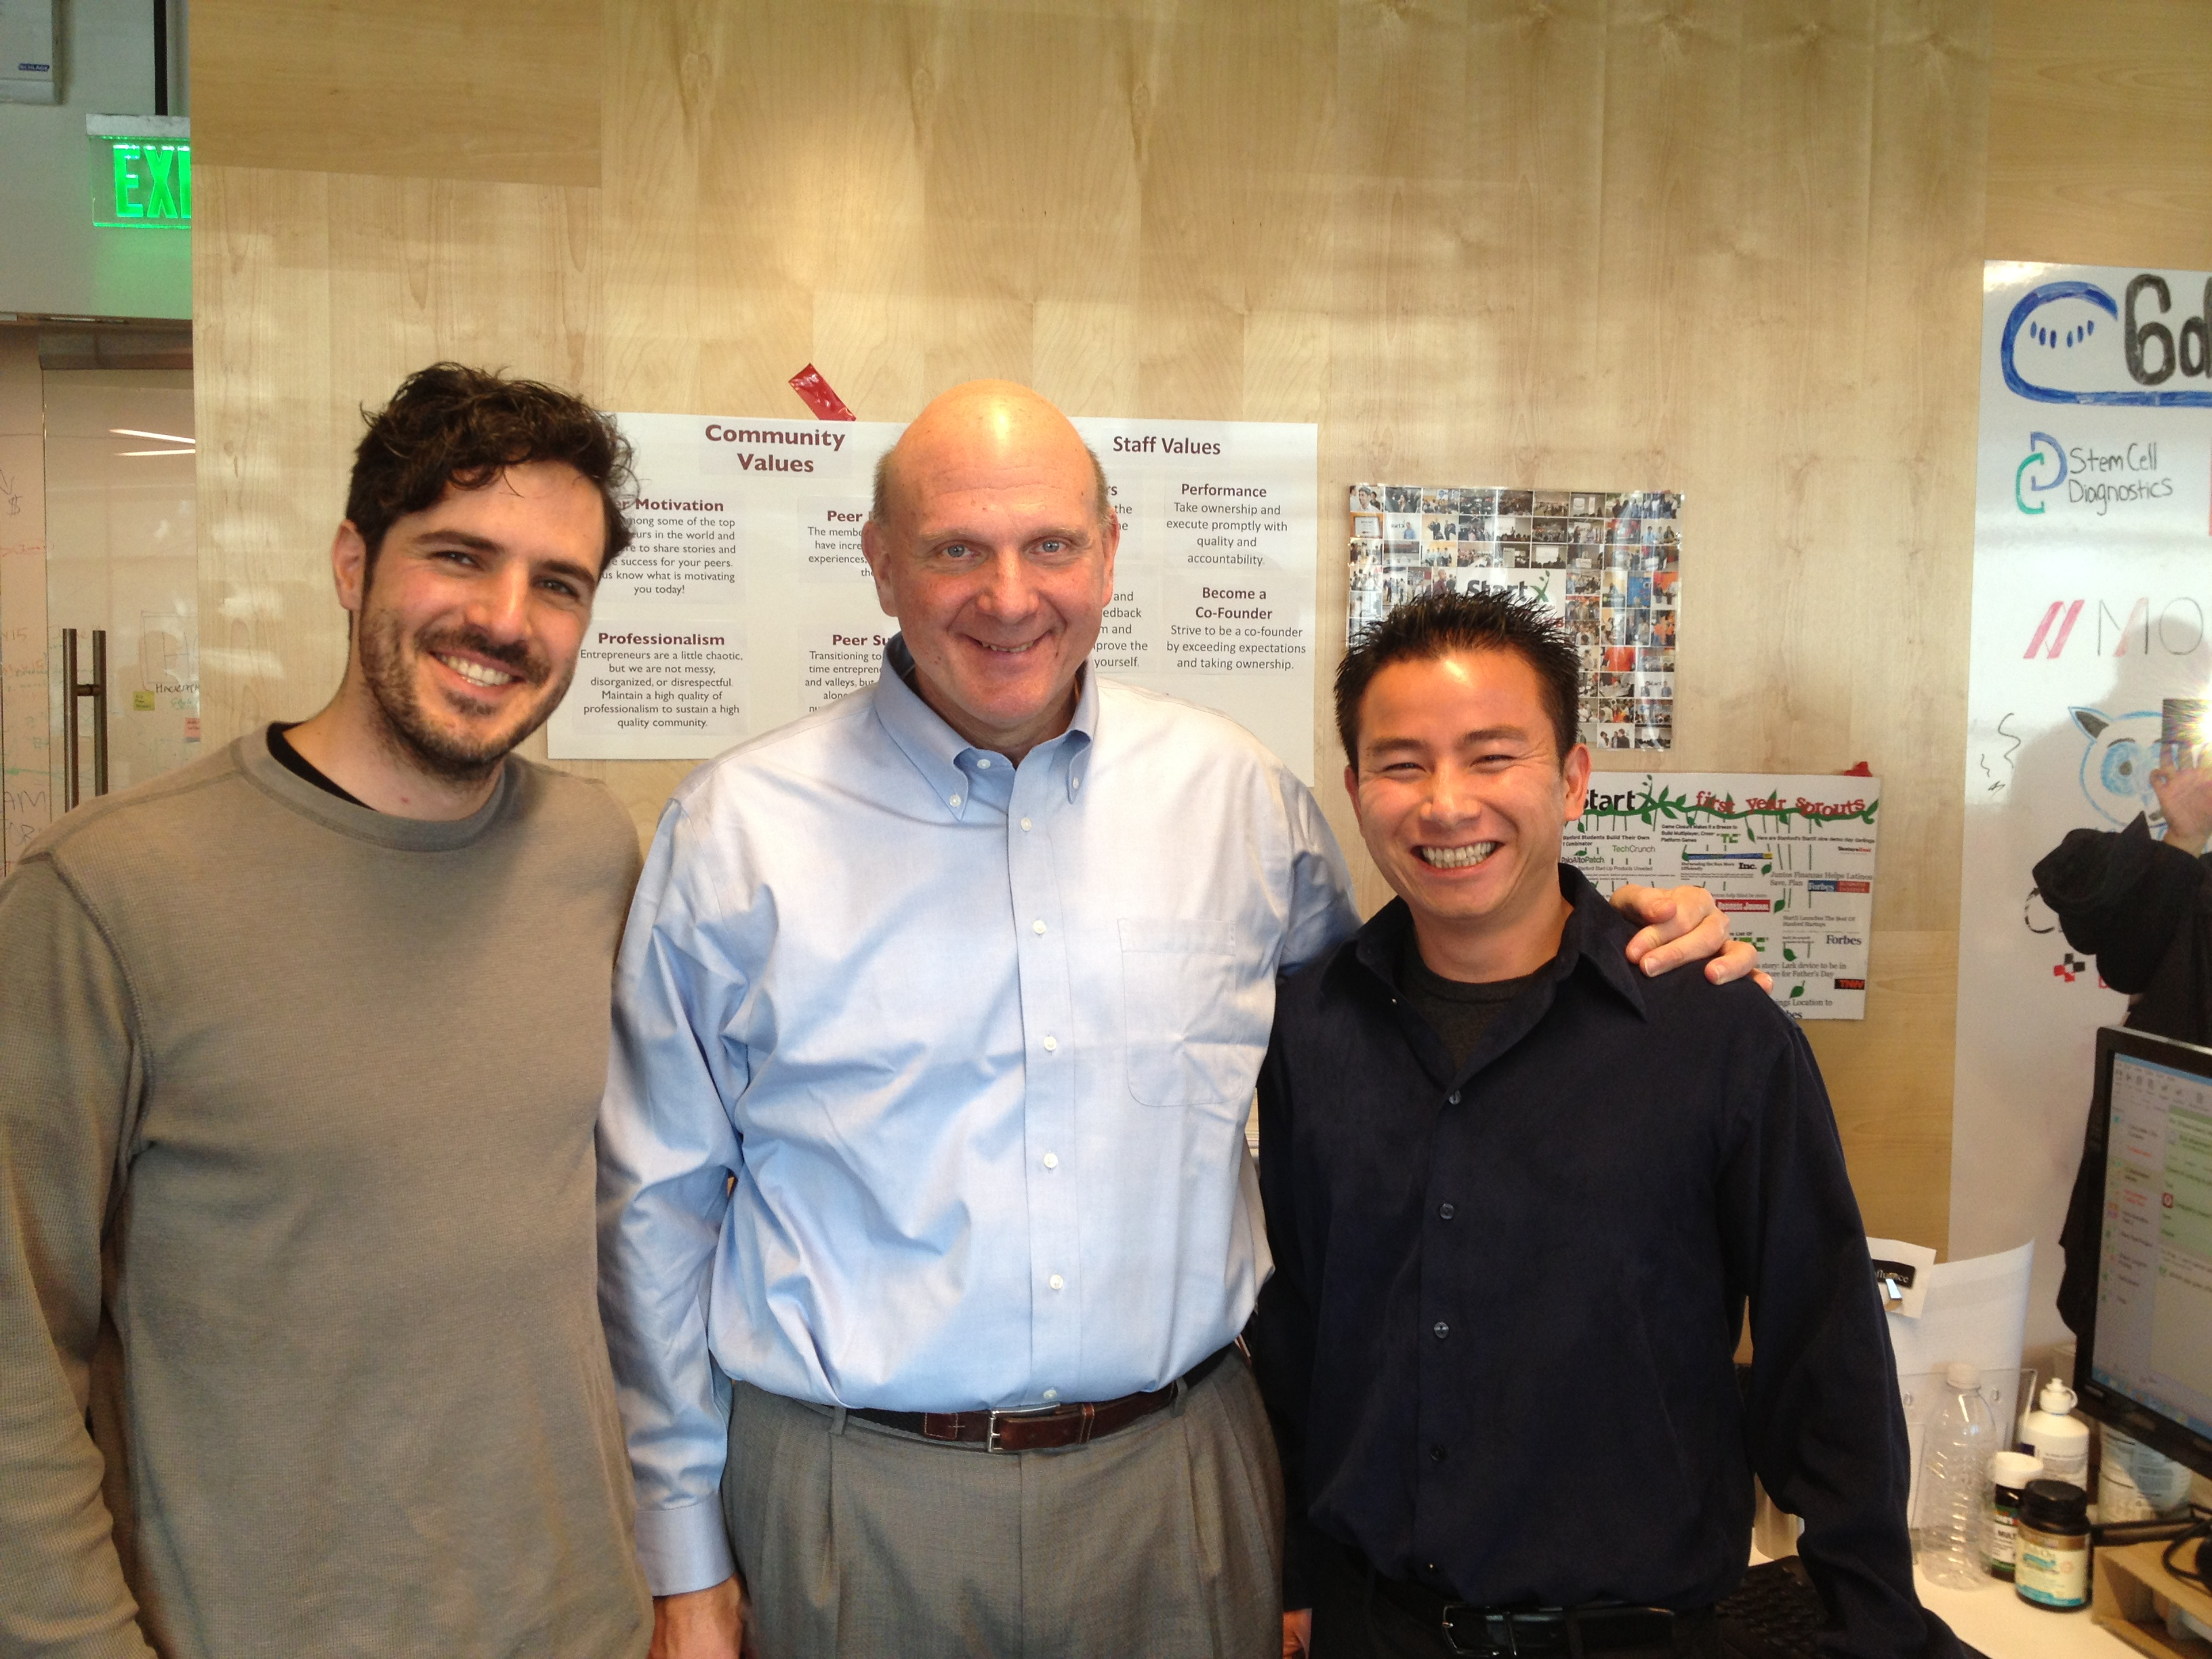 Steve Ballmer, CEO of Microsoft, visits Appfluence and StartX